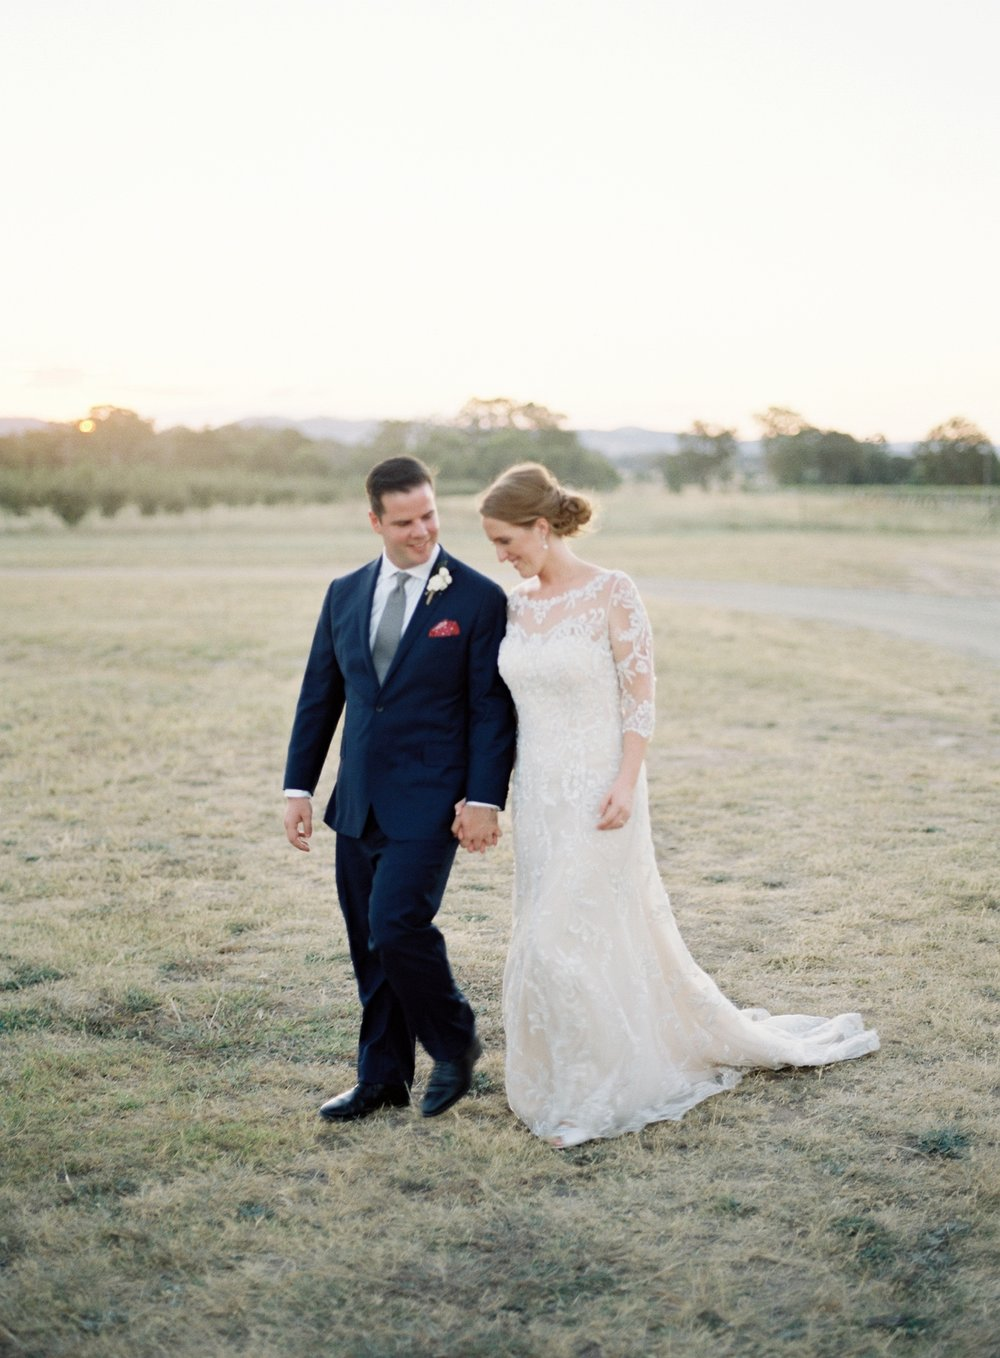 The Vine Grove Mudgee Wedding, Photography by Mr Edwards_1825.jpg